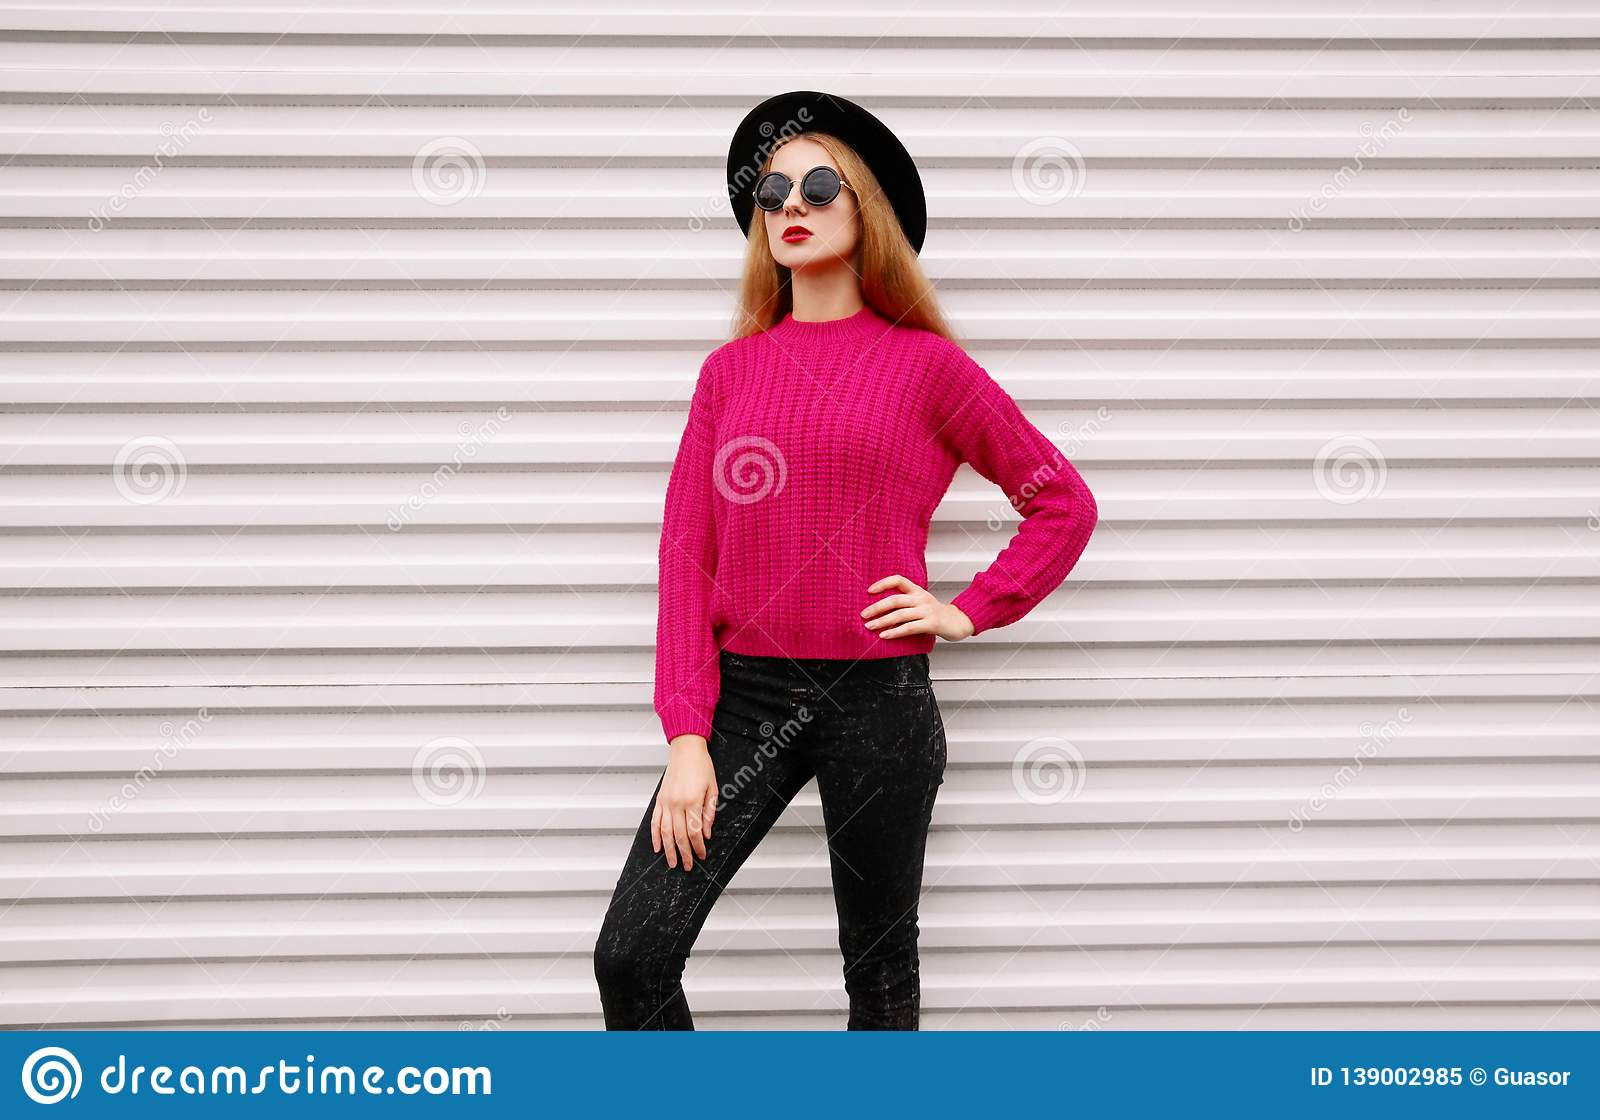 Stylish young woman posing in colorful pink knitted sweater, black round hat on white wall